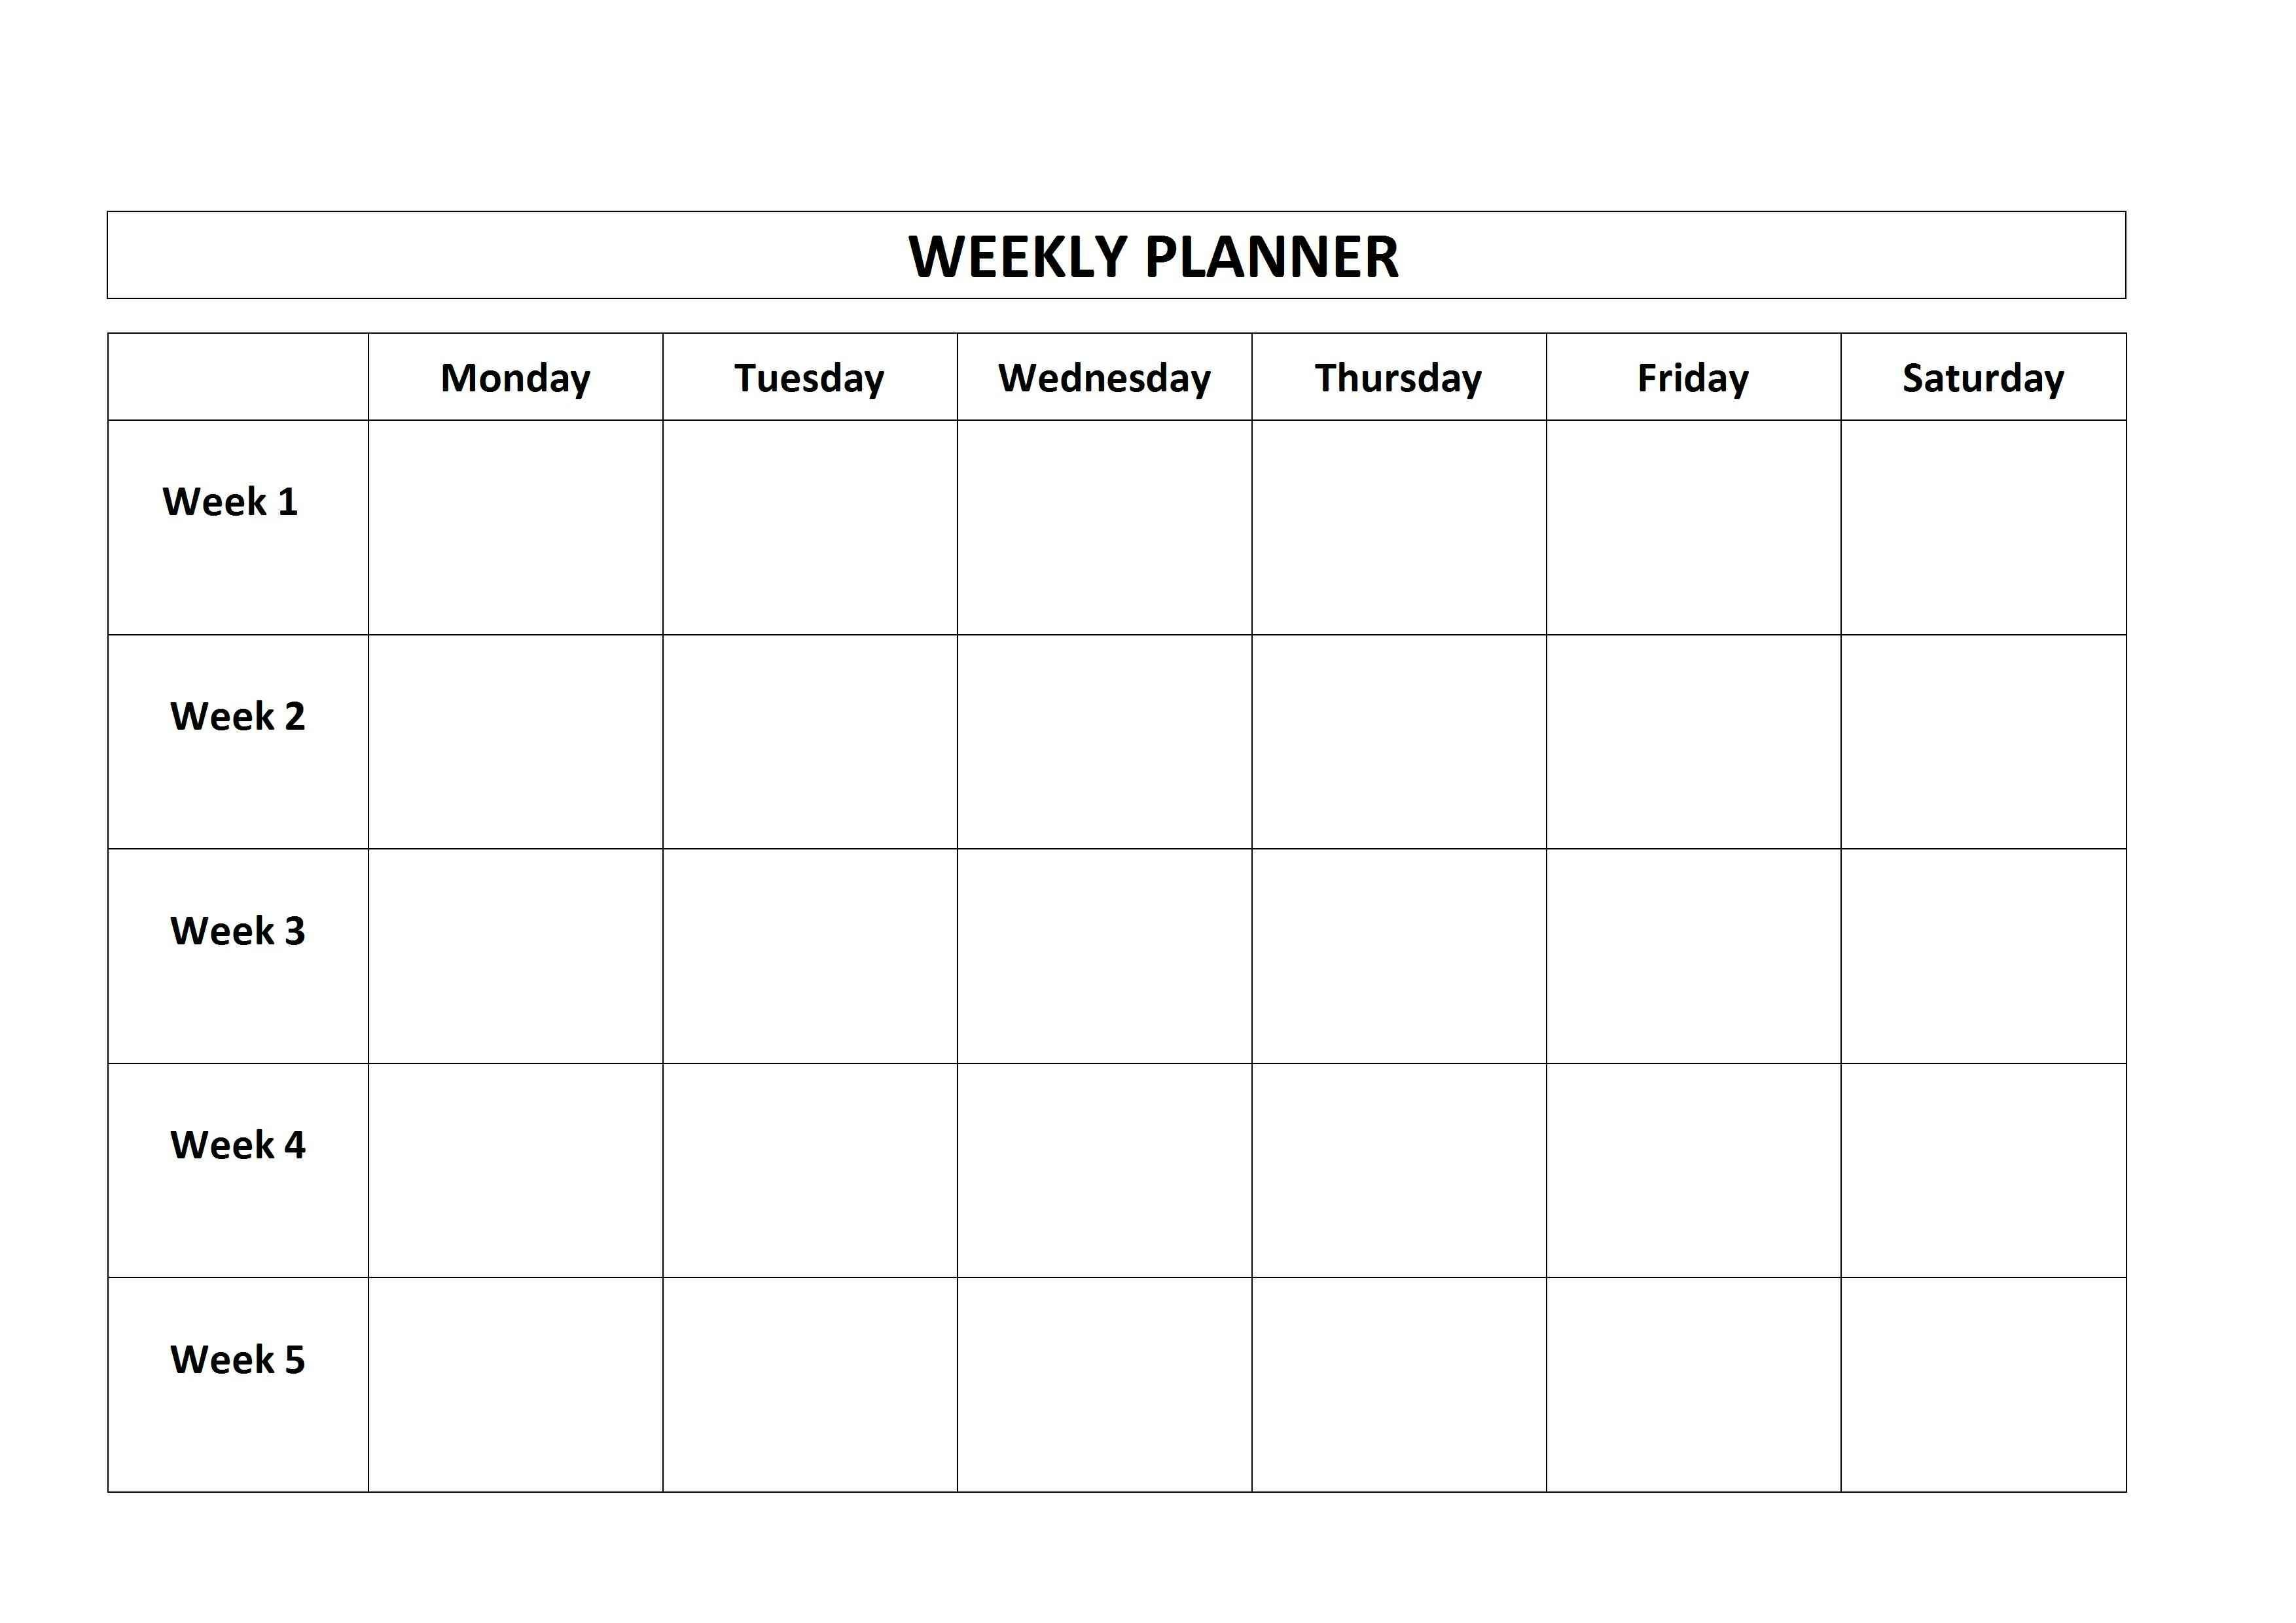 Free Printable Weekly Planner Monday Friday School Calendar Weekly Calendar Printable Monday Friday